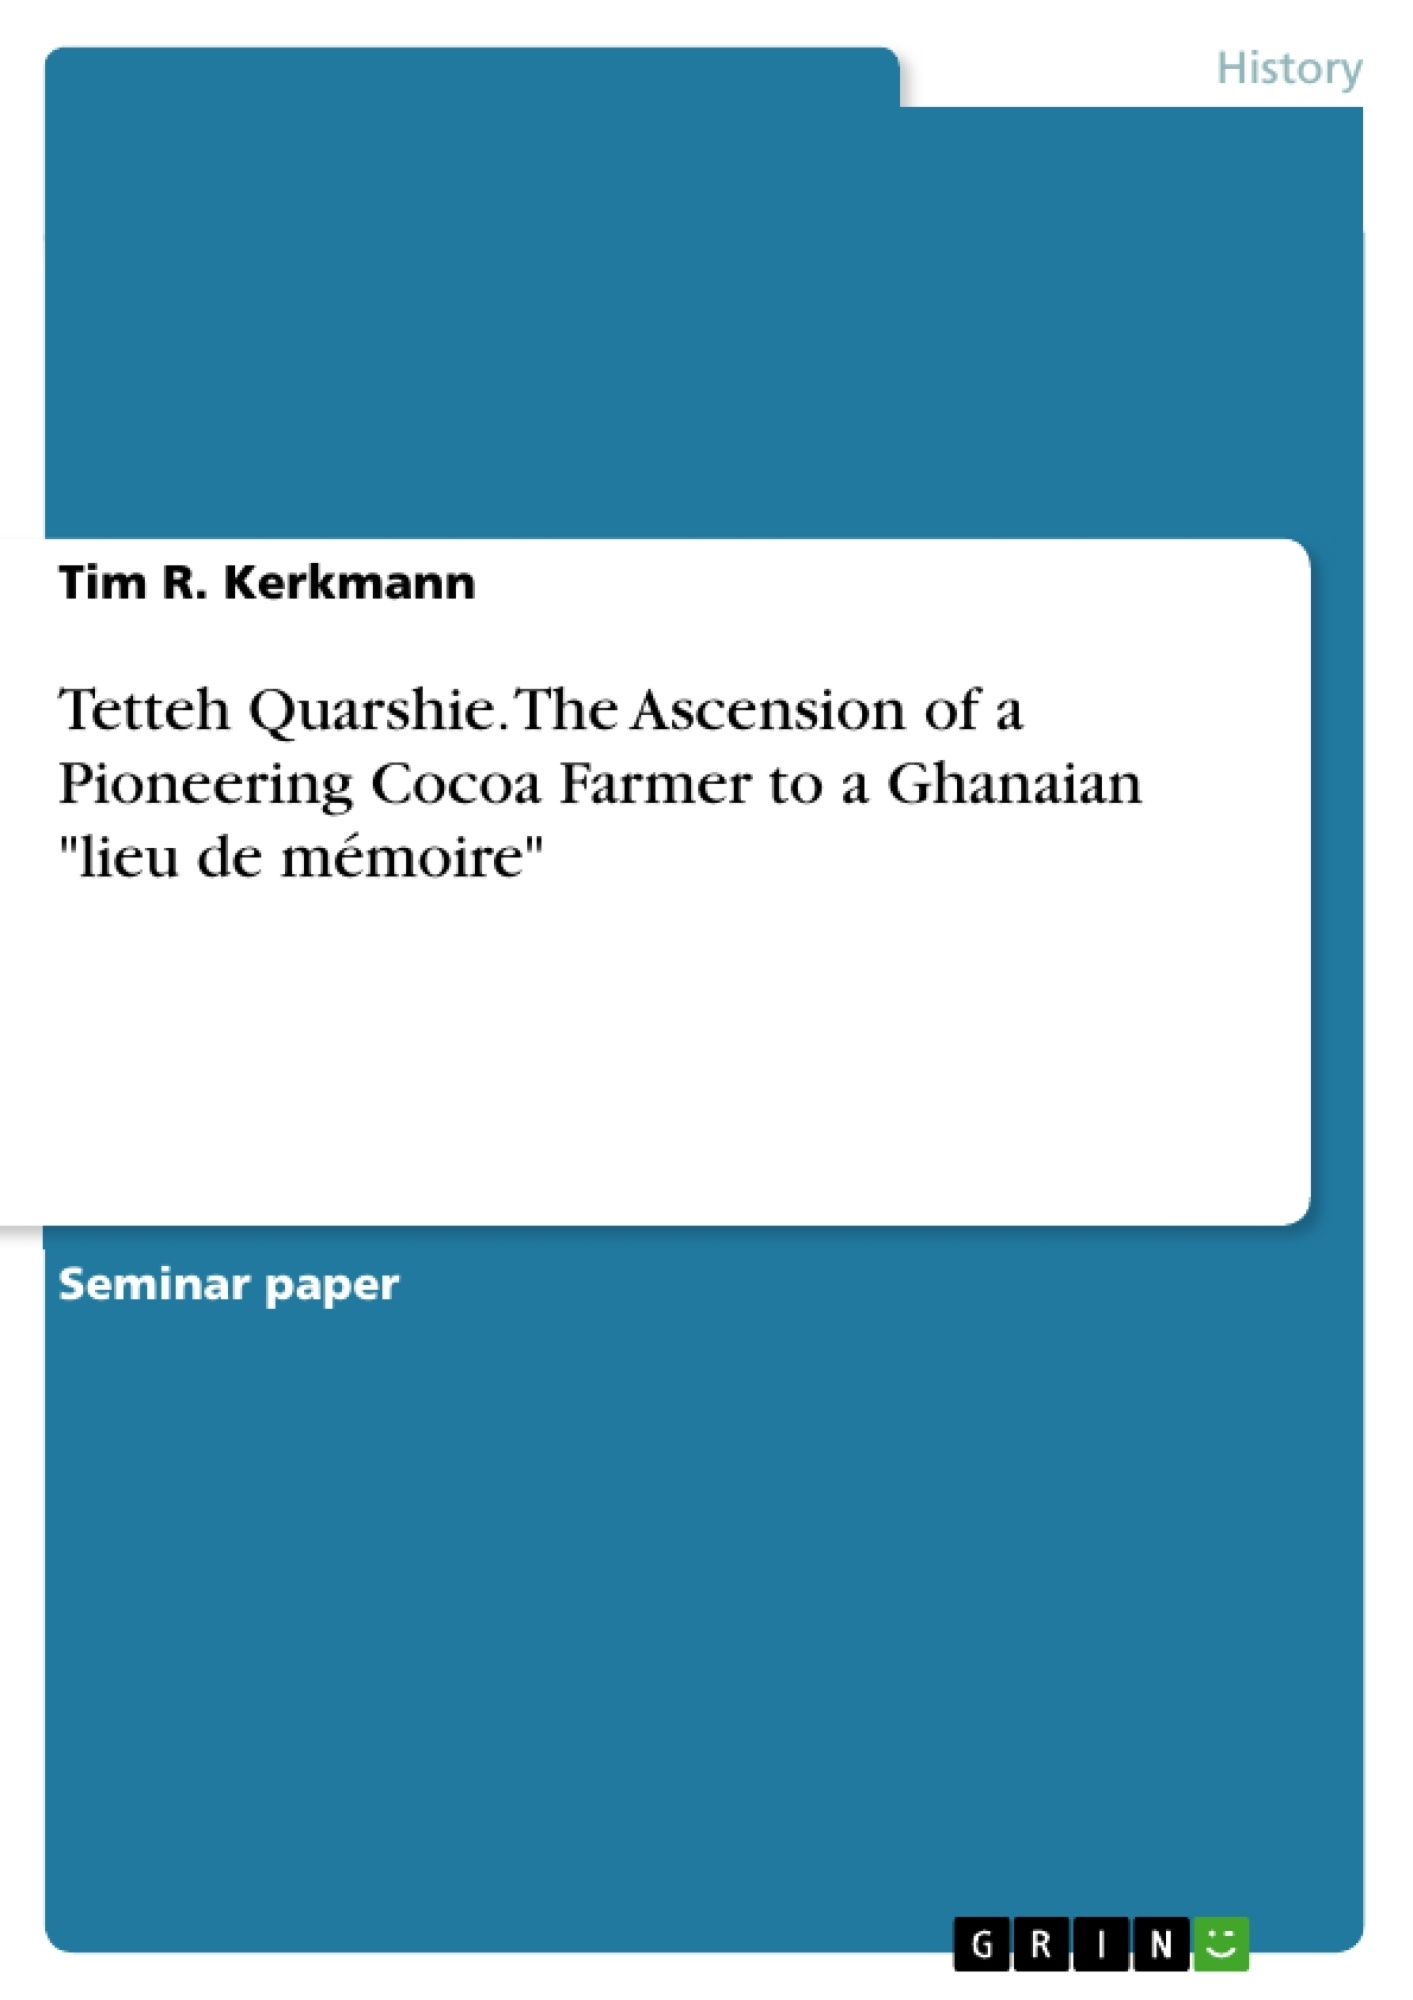 """Title: Tetteh Quarshie. The Ascension of a Pioneering Cocoa Farmer to a Ghanaian """"lieu de mémoire"""""""